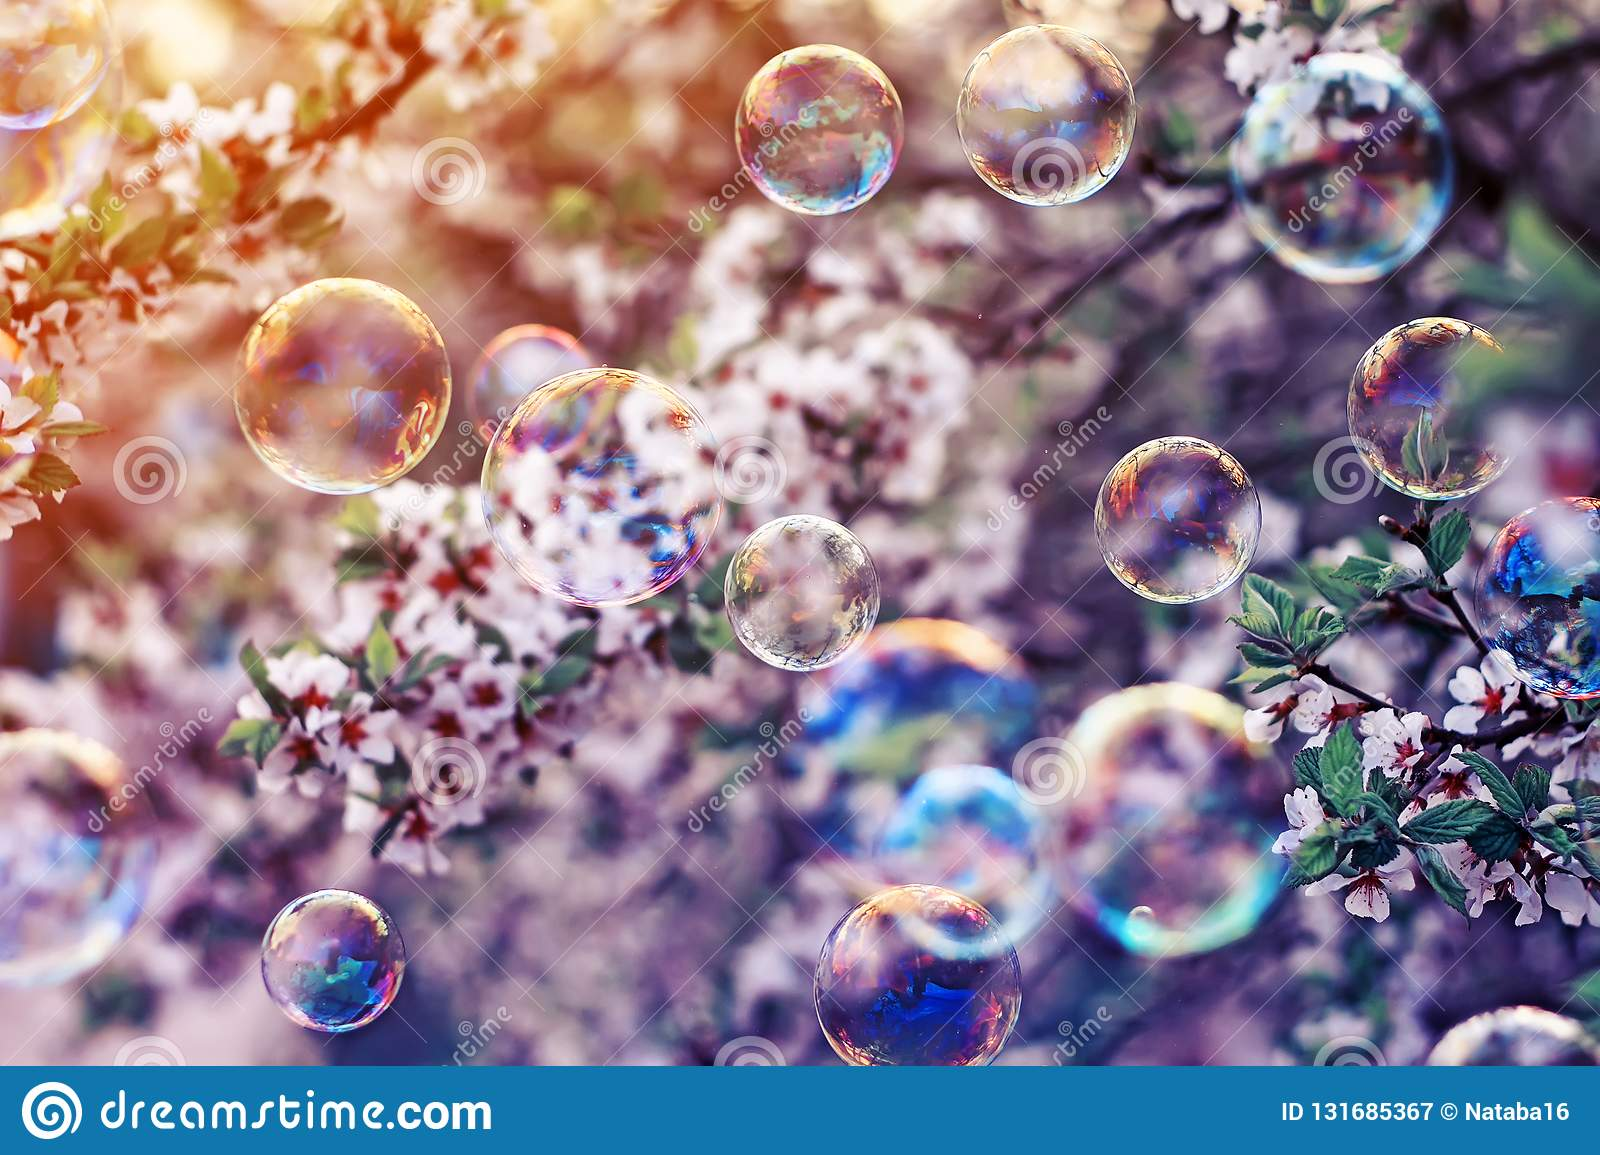 festive background with flying bubbles shimmering in the sun in the spring Sunny garden above the cherry blossom branch